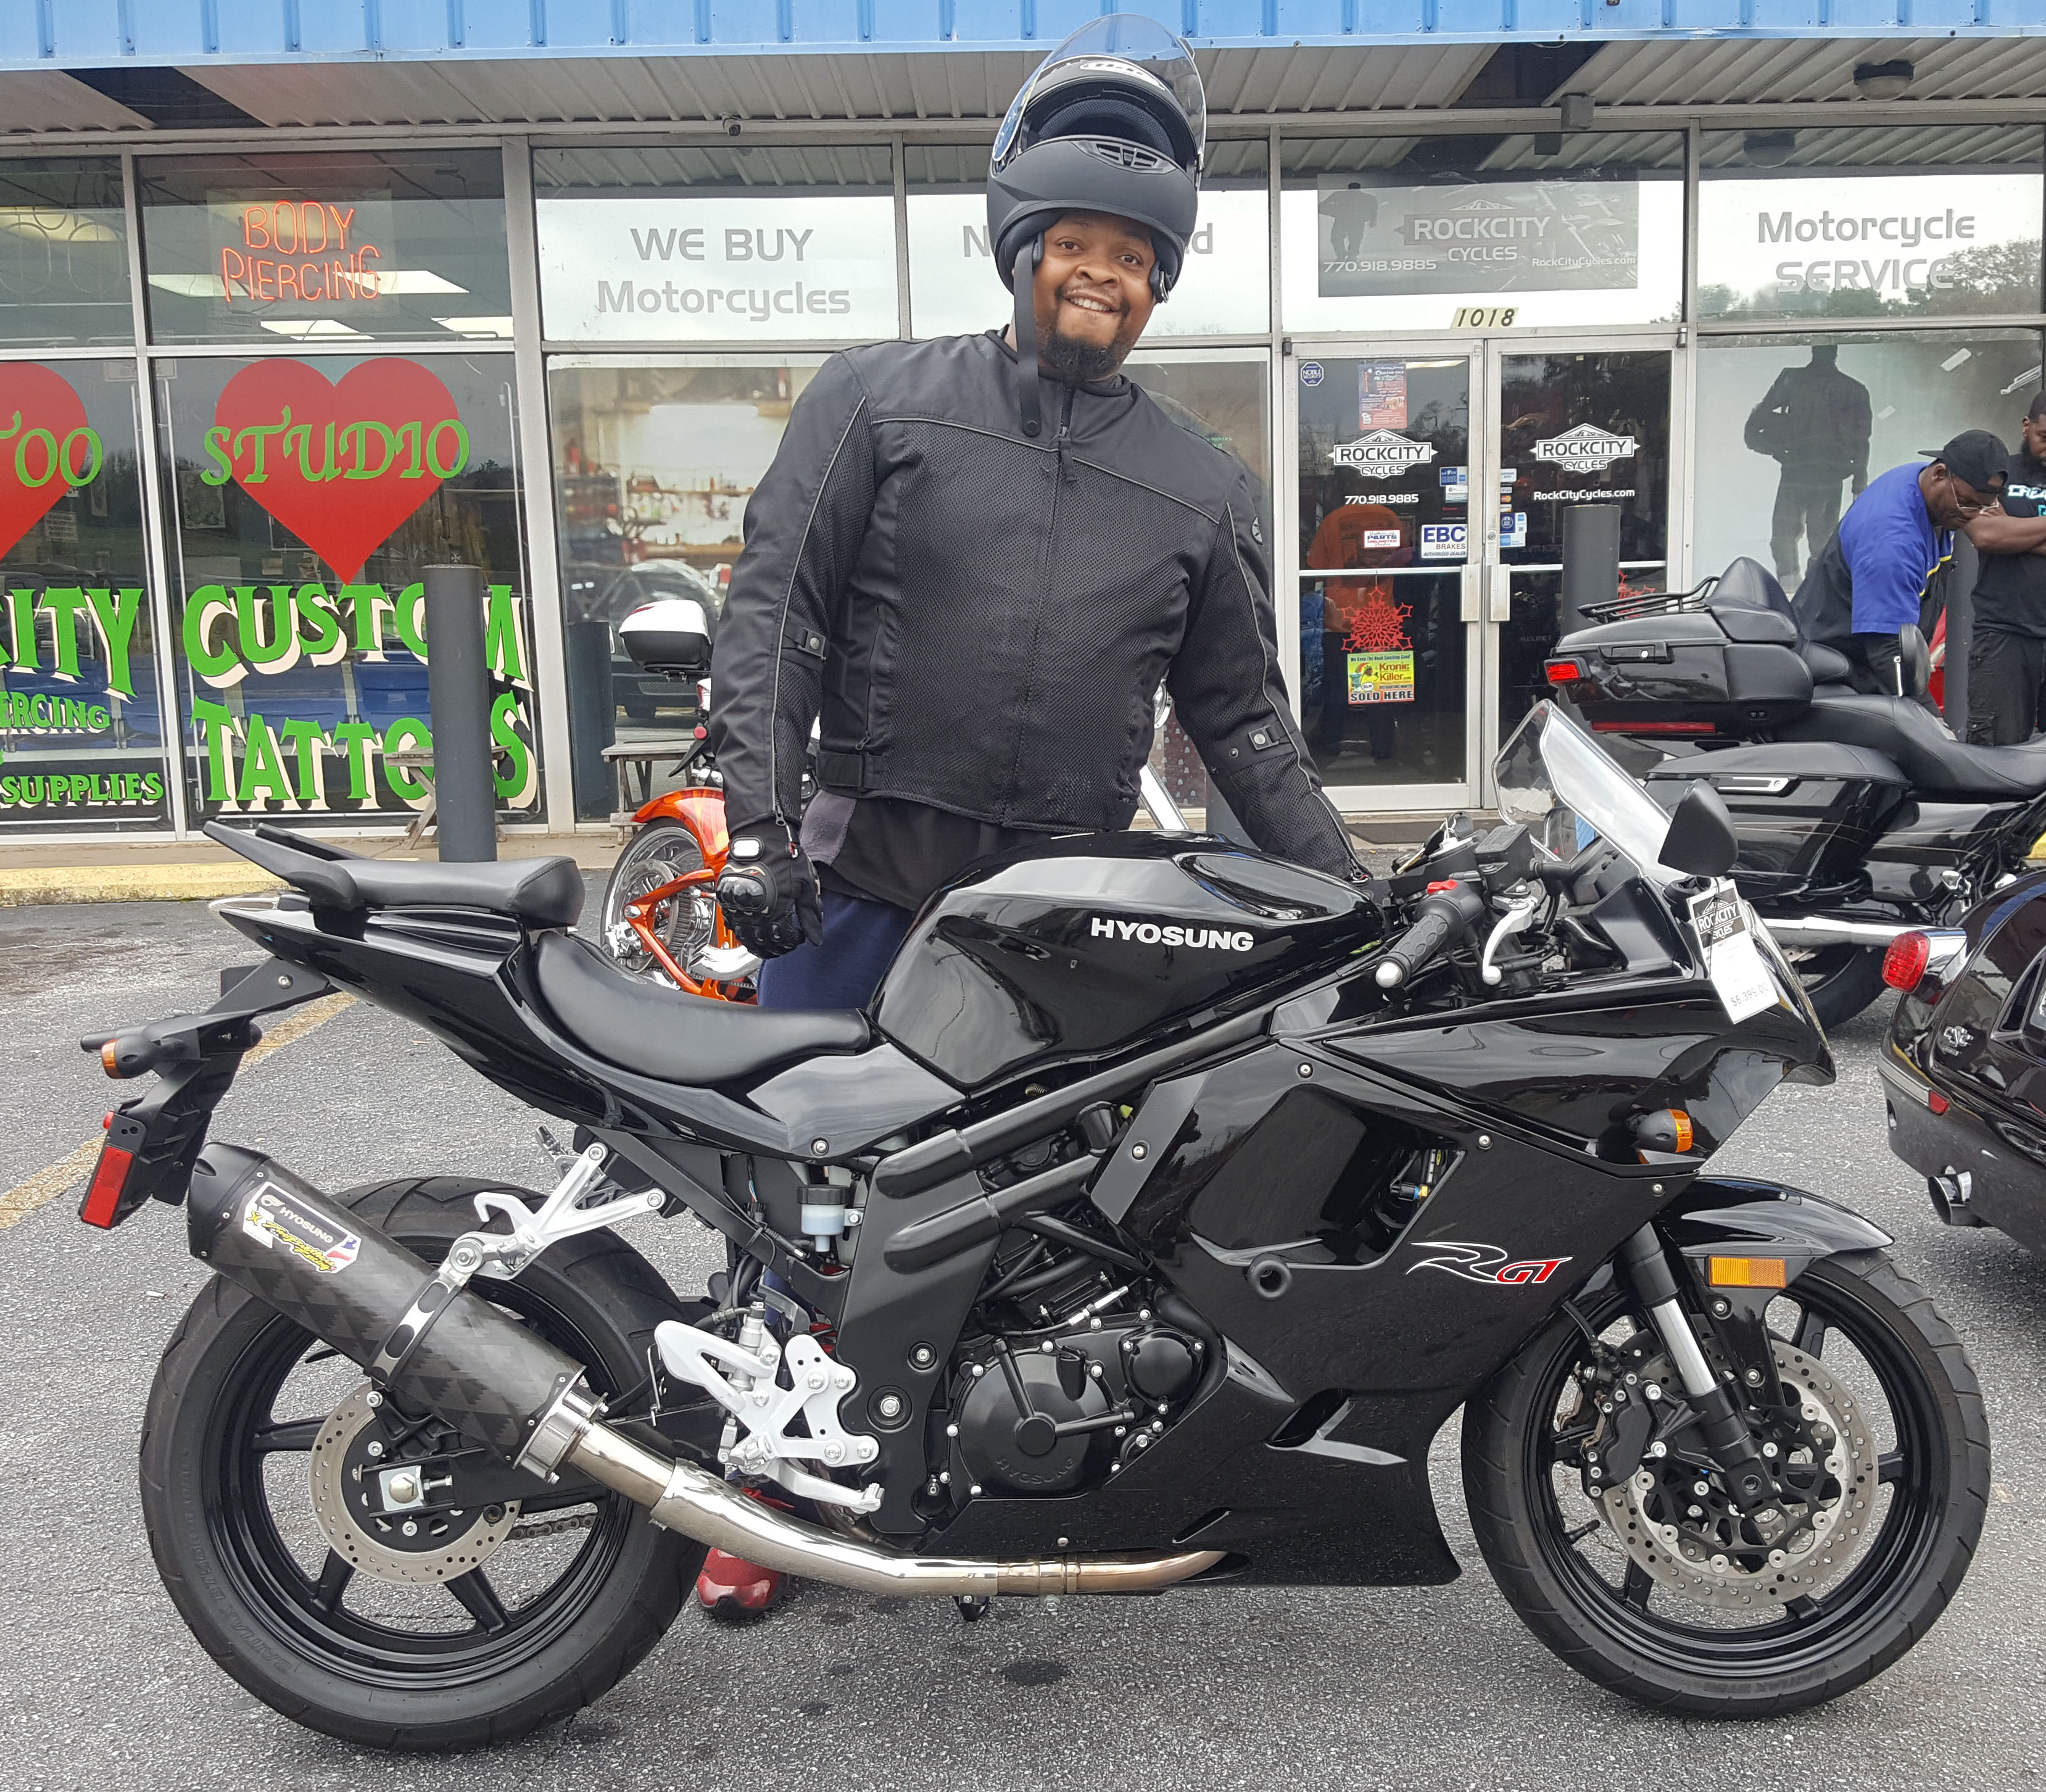 Taron H. with his 2015 Hyosung GT650R